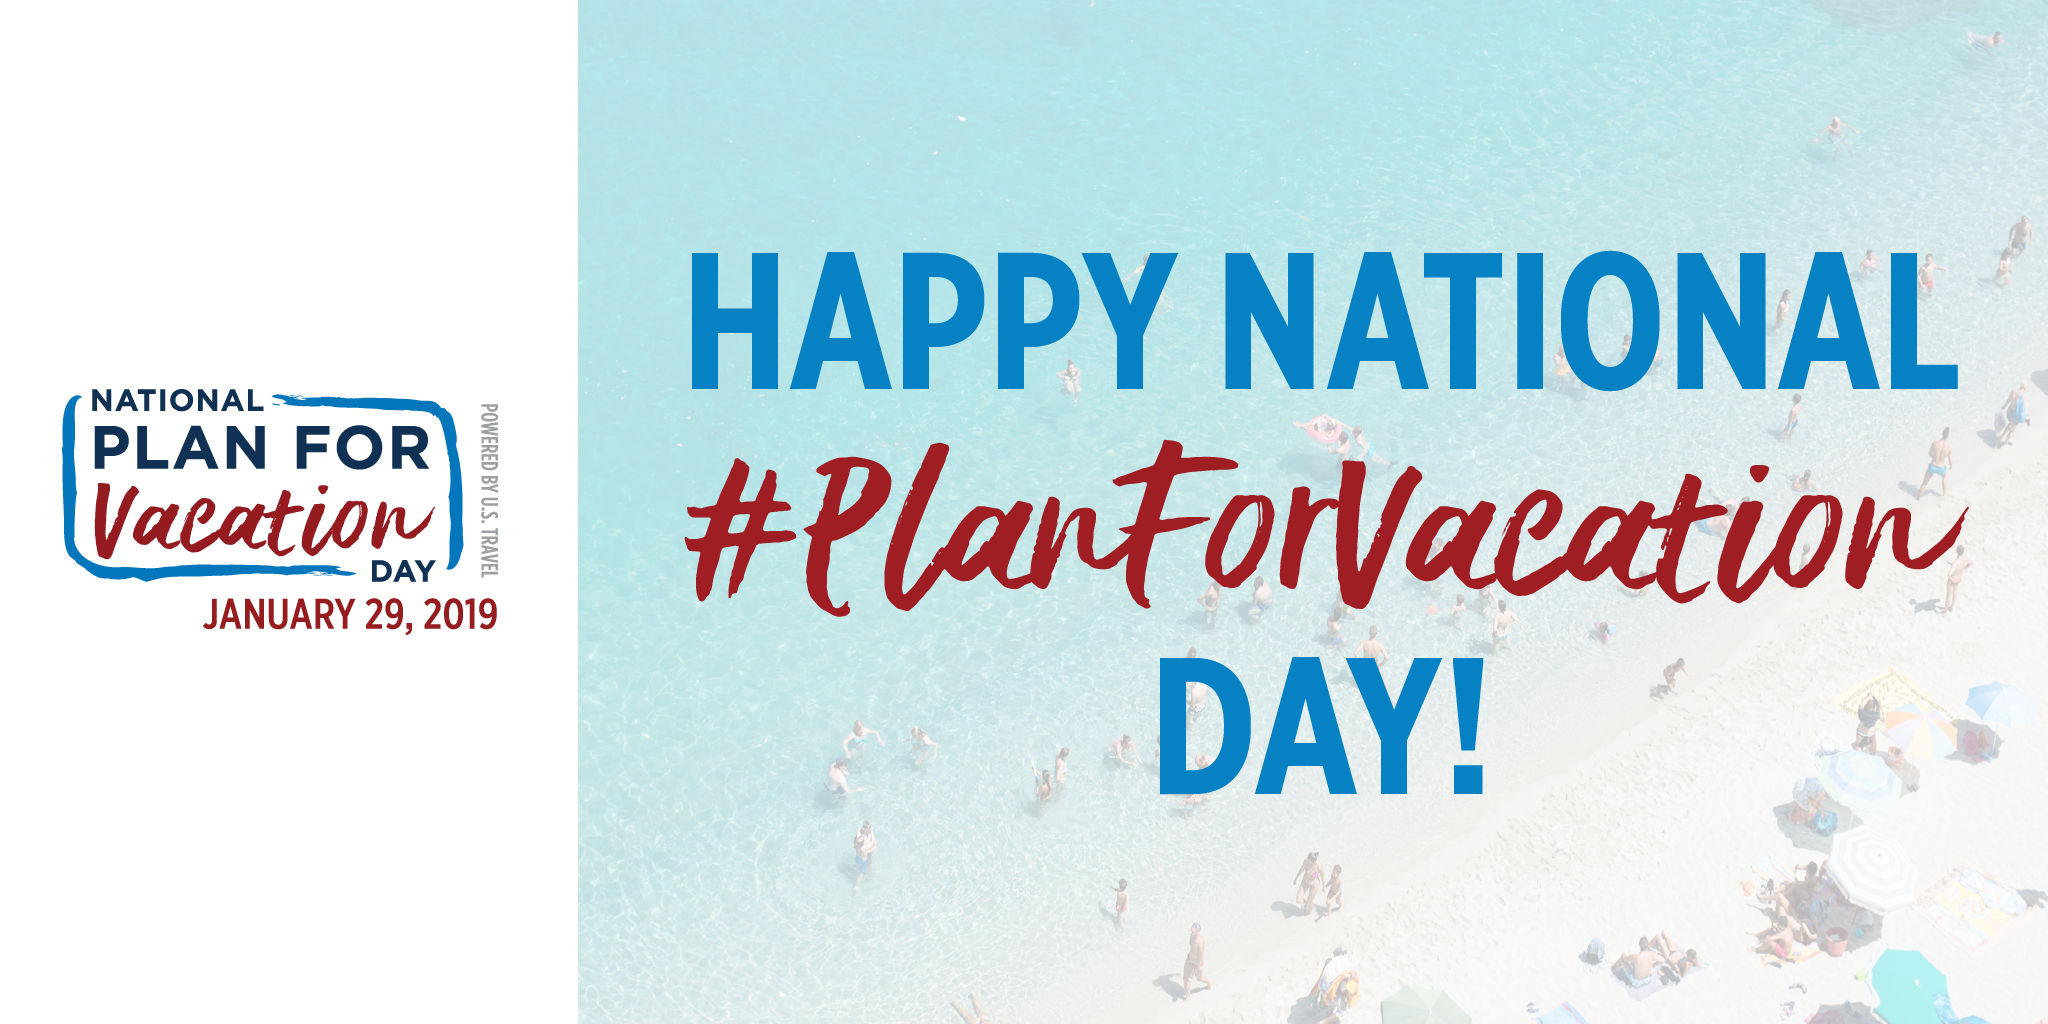 Happy National Plan for Vacation Day